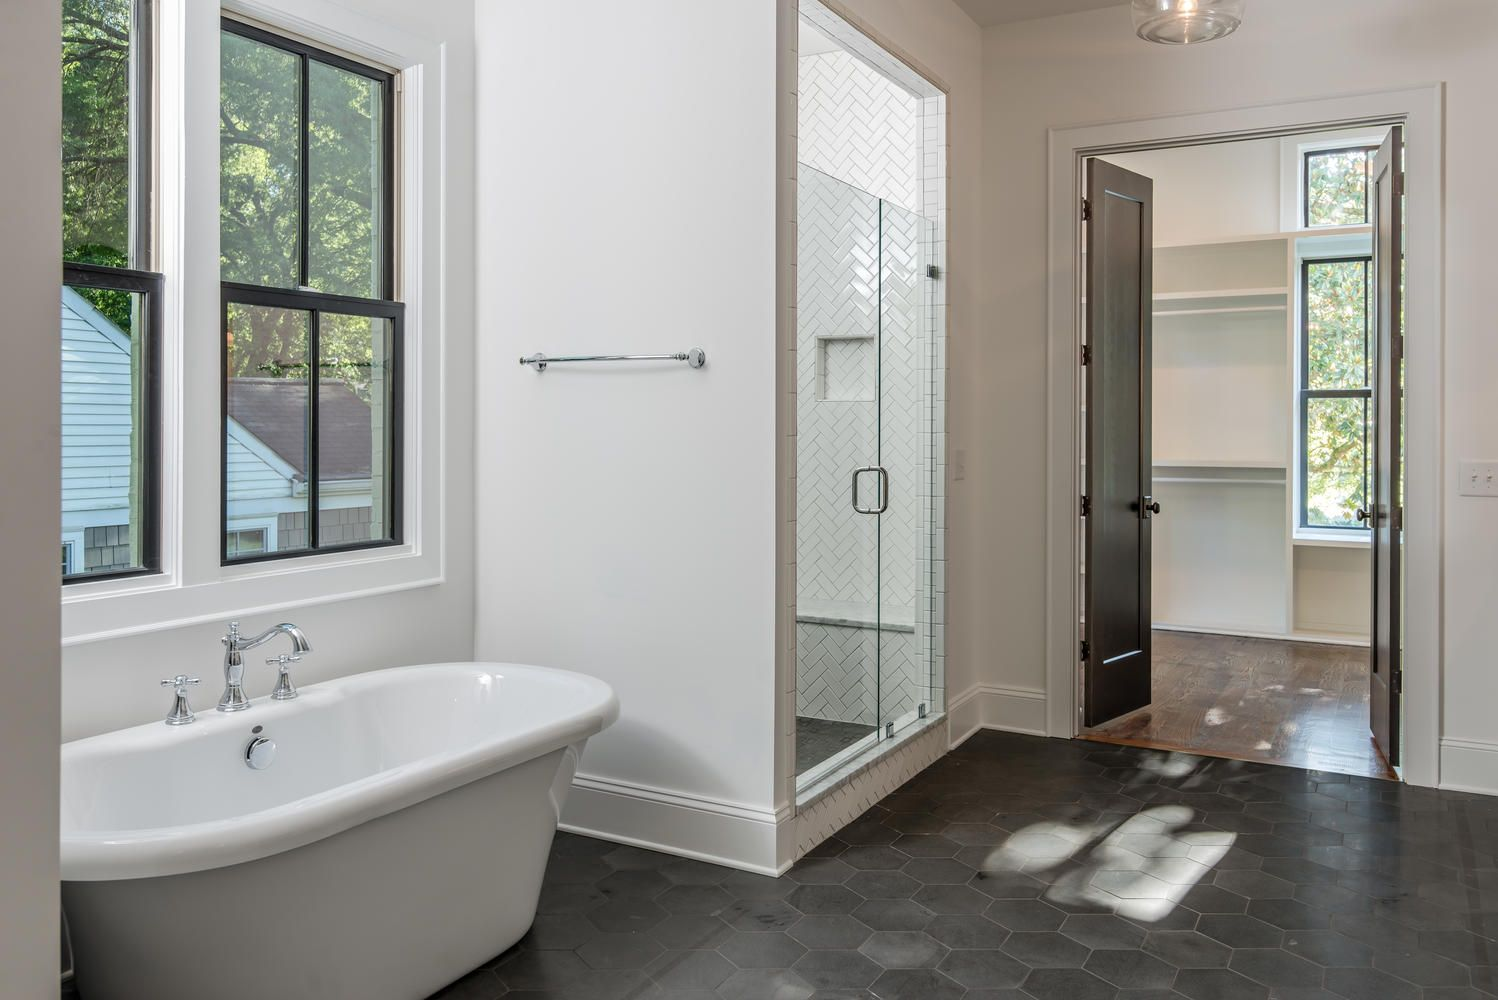 Layout Closet Door At End Of Bath No Entry Shower Across From Dressing Table Platform Tub House Bathroom House Home Remodeling